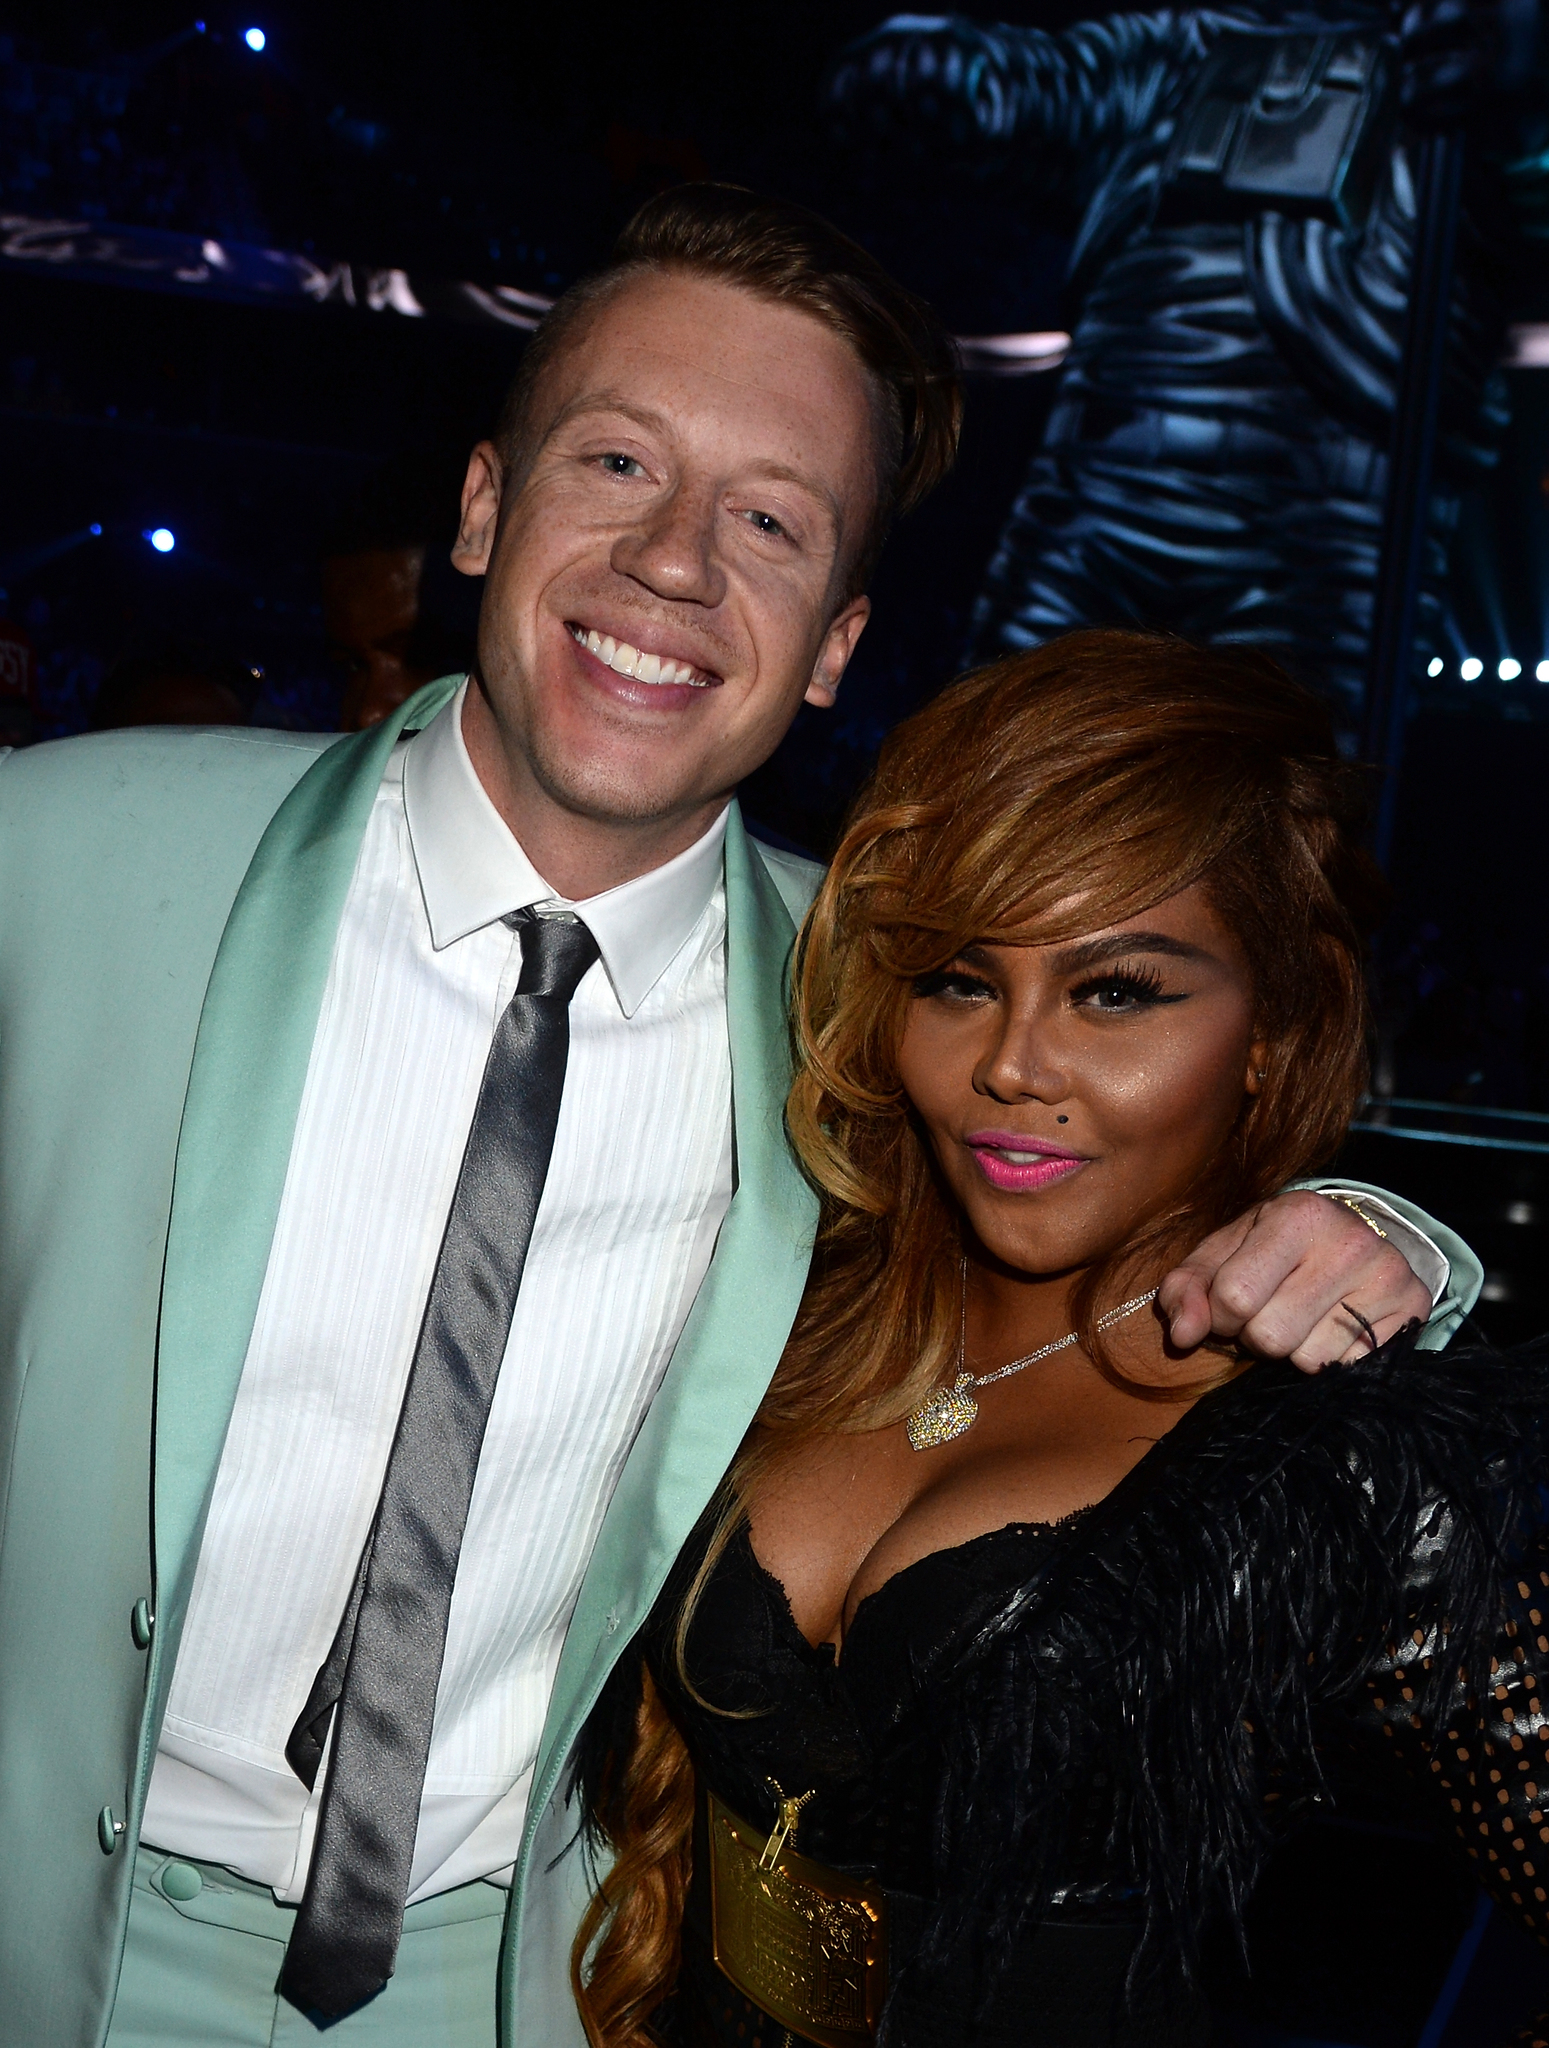 Lil' Kim and Macklemore at event of 2013 MTV Video Music Awards (2013)